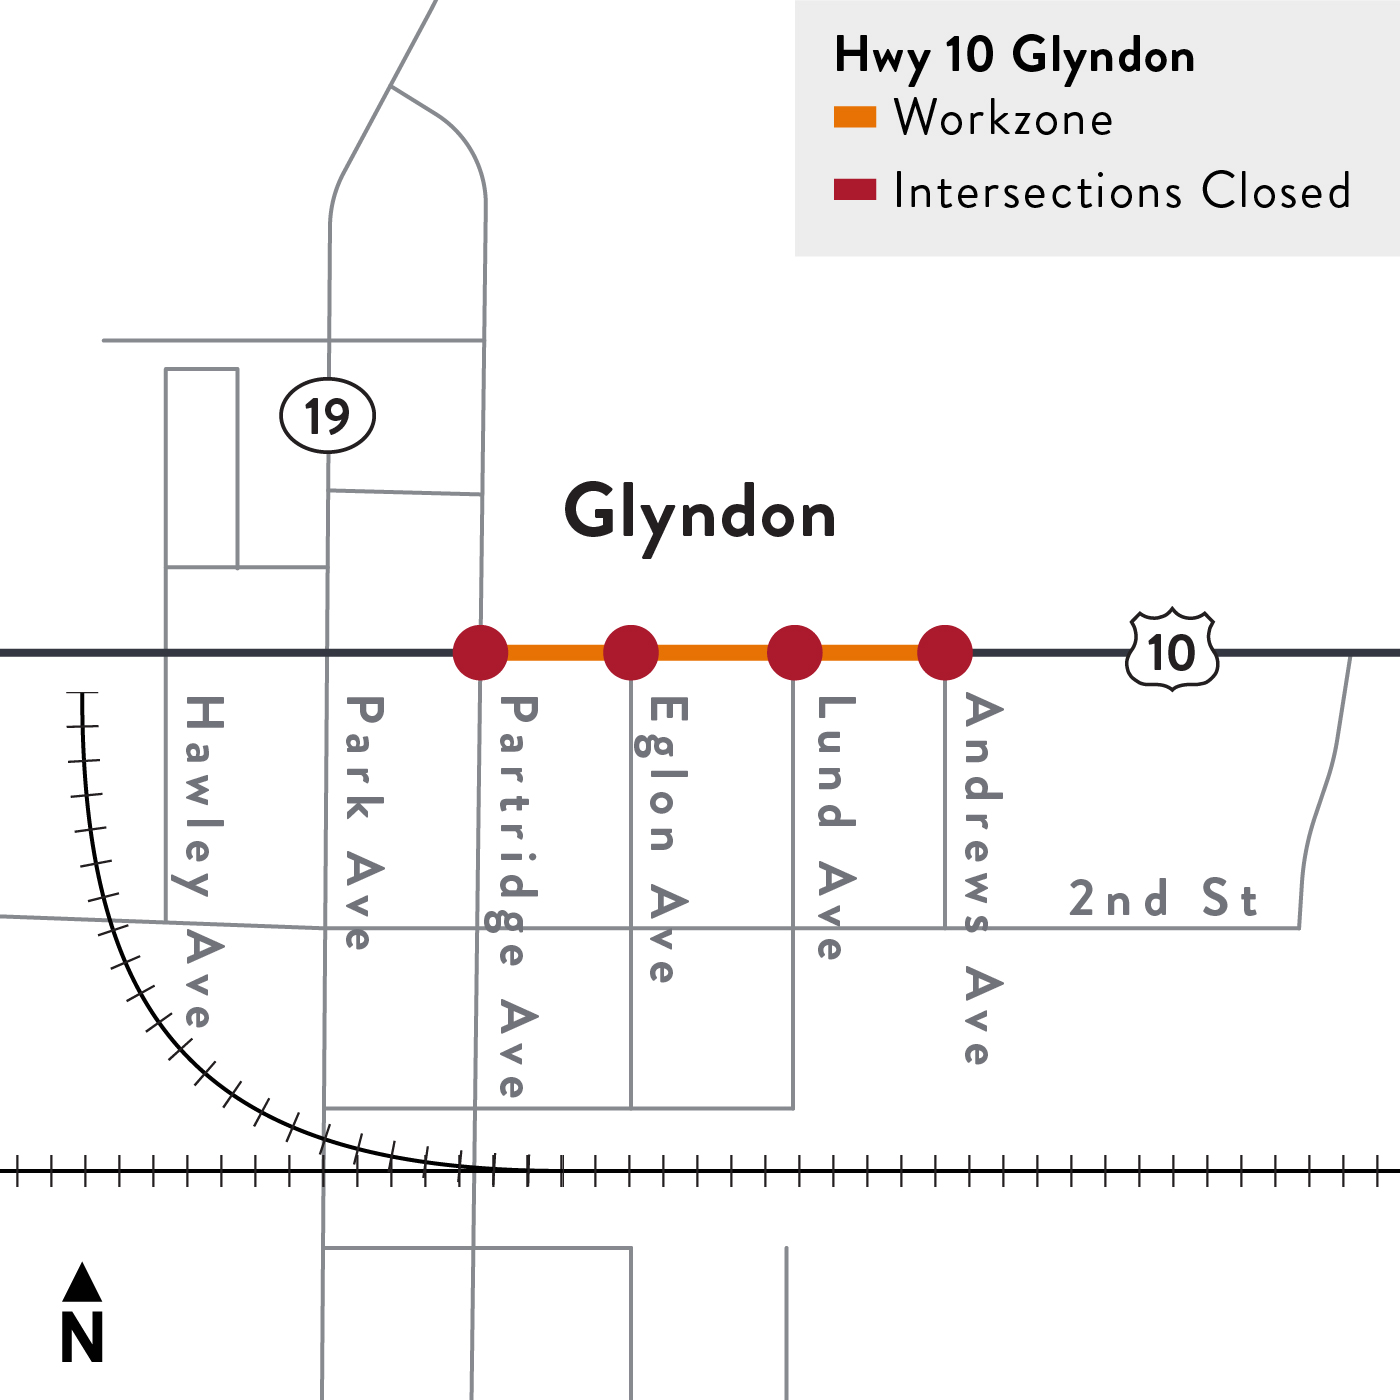 Project map for Highway 10 pavement repairs in Glyndon